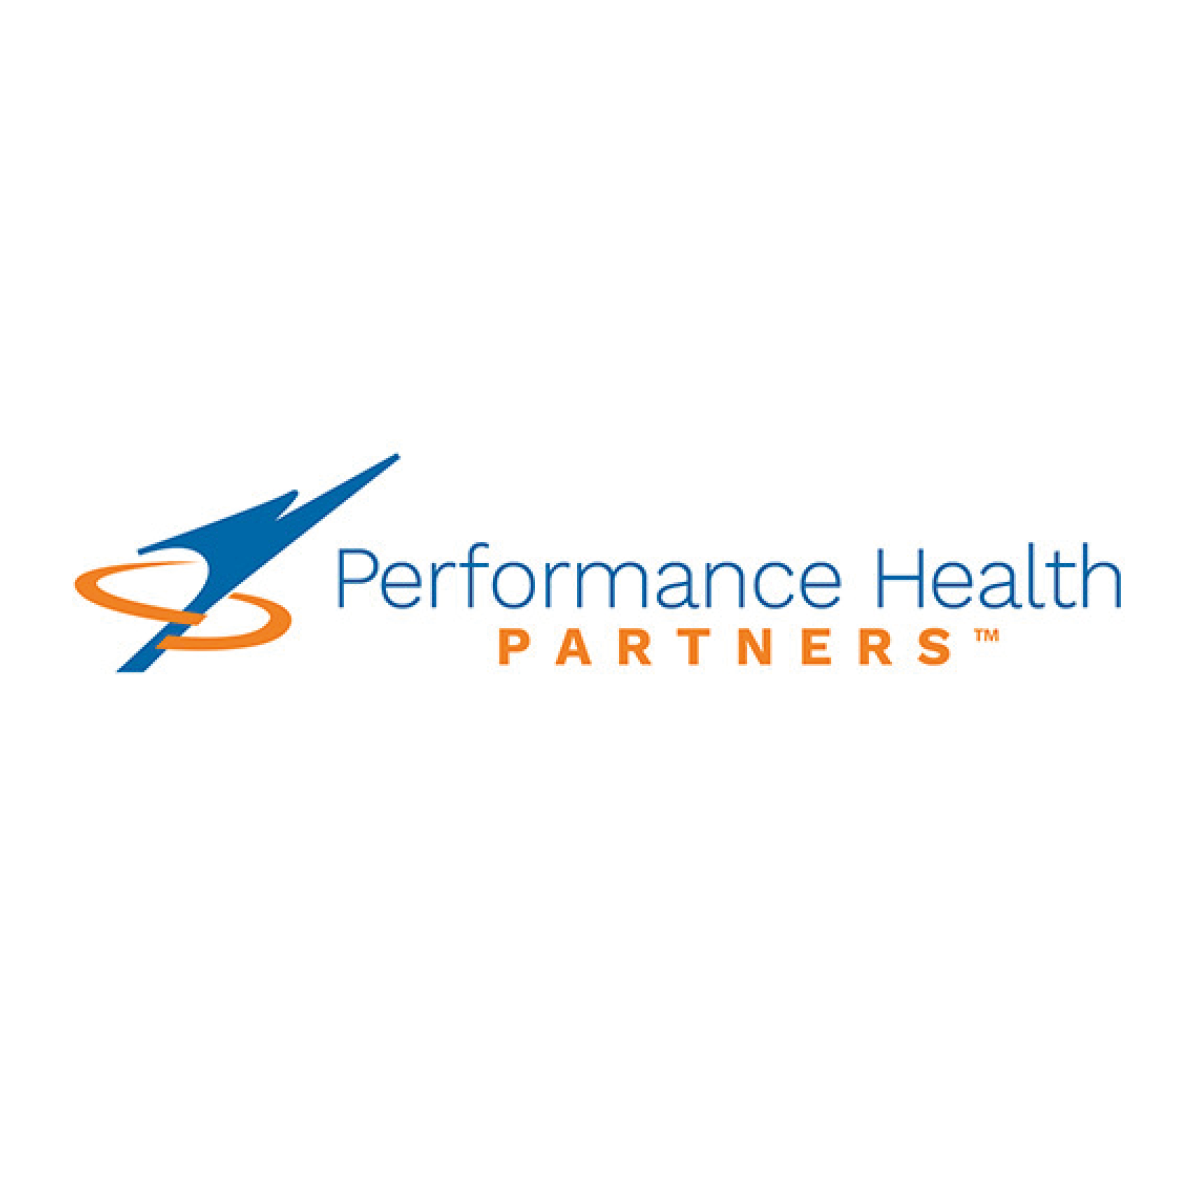 Performance Health Partners - USA